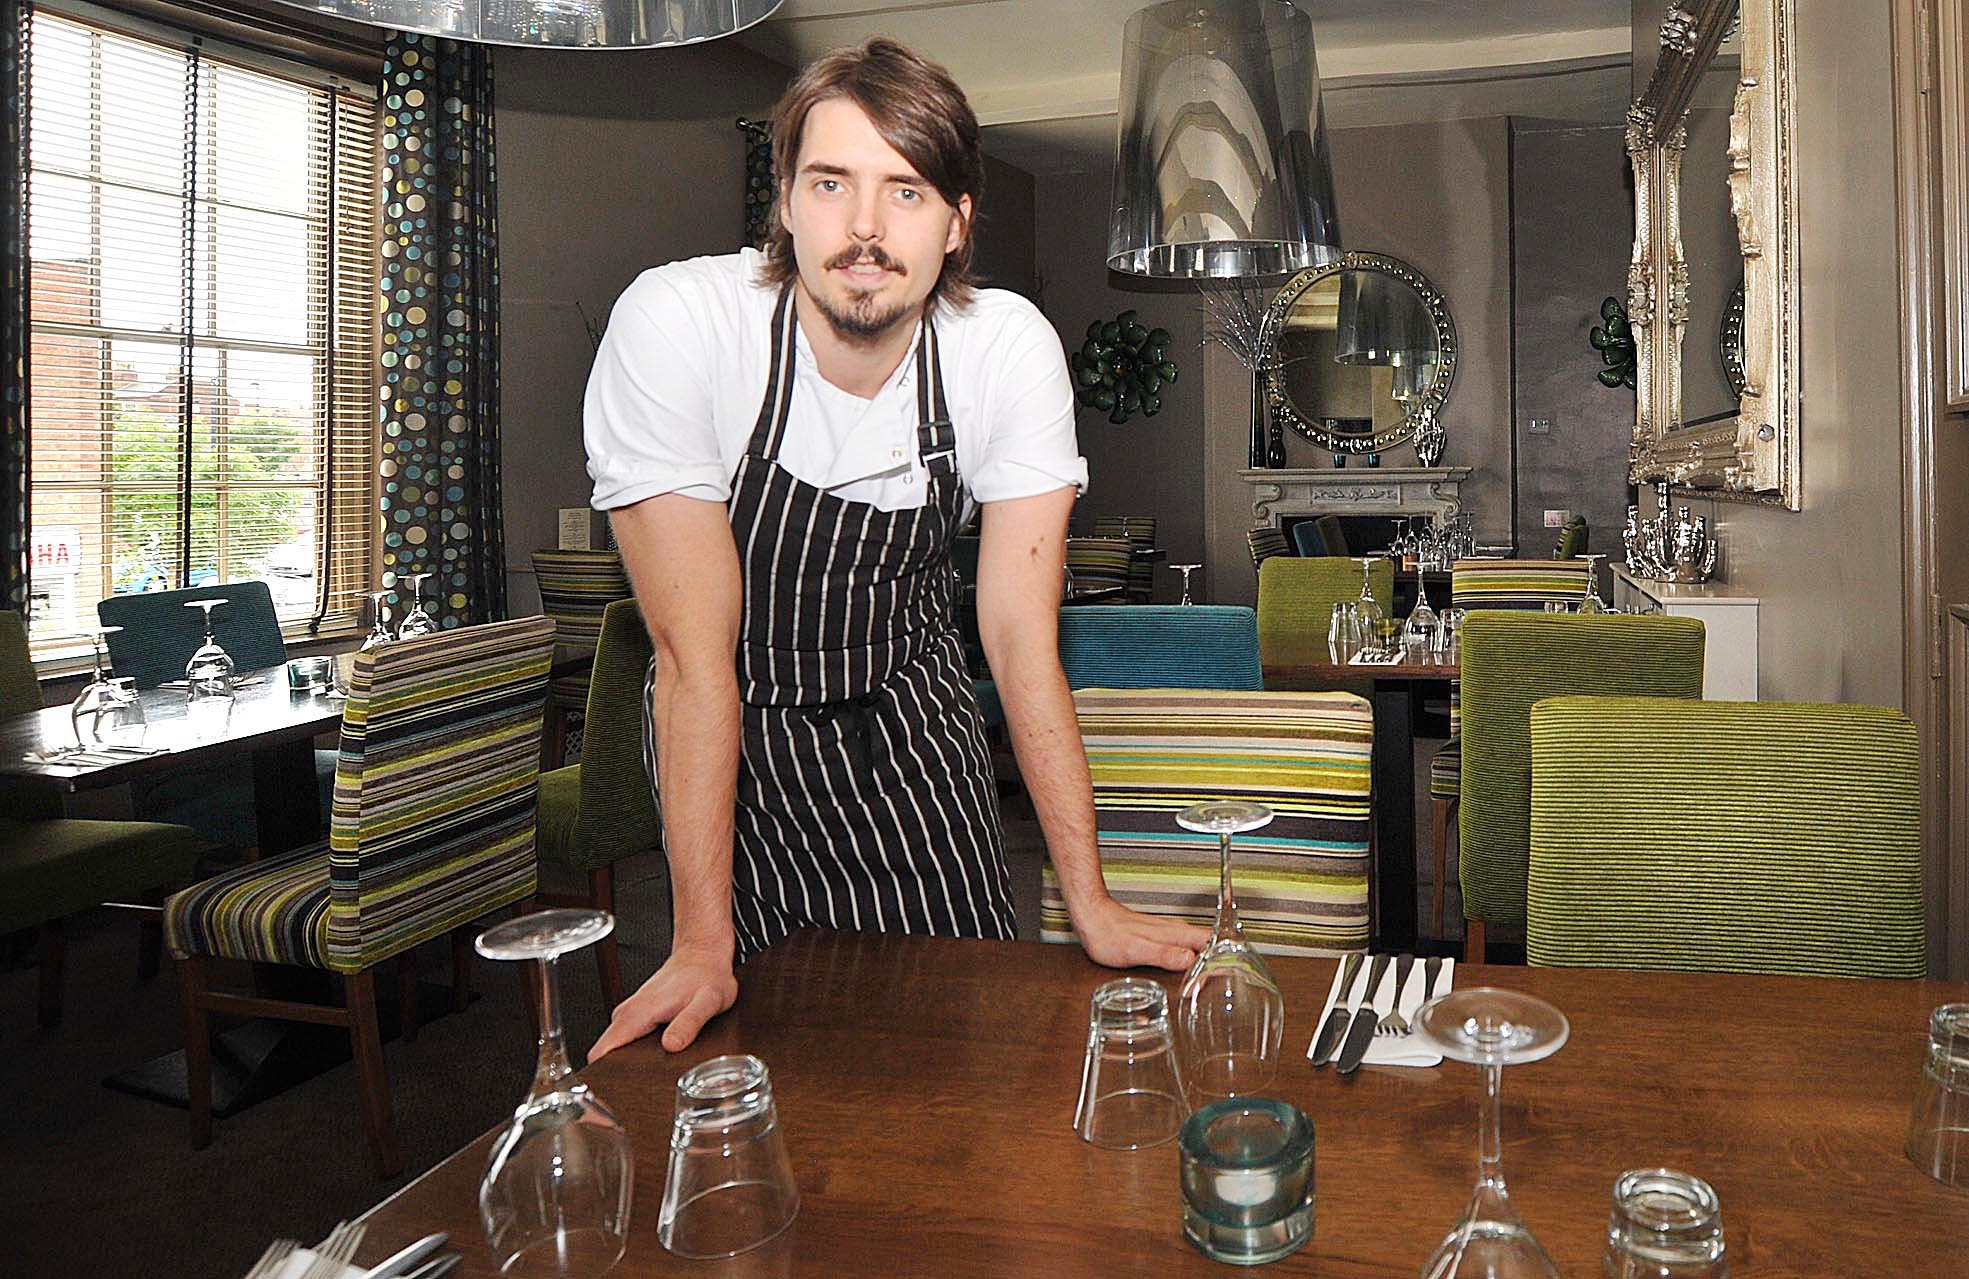 Chef in the running for fundraising event